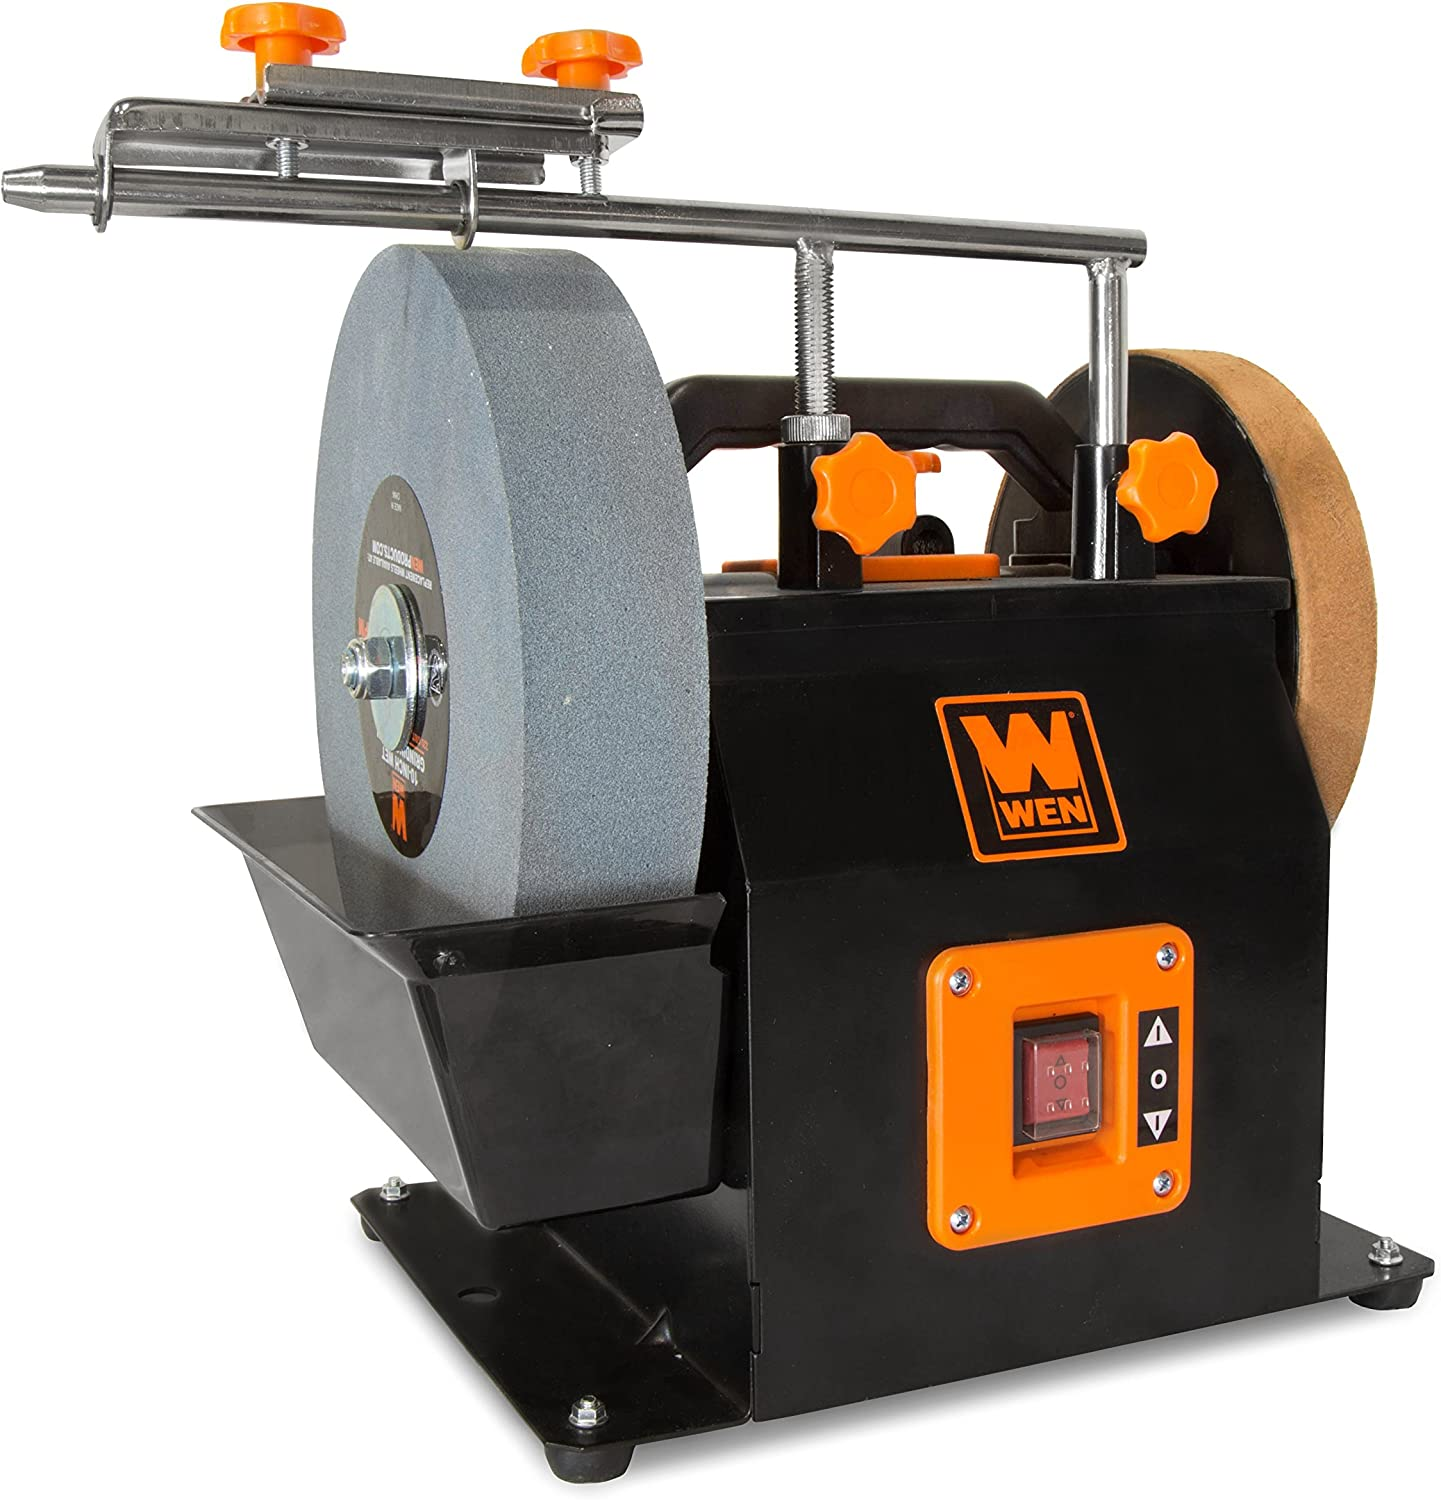 Seattle Mall WEN Max 51% OFF BG4270T 10-Inch Two-Direction Water Dry Cooled Wet Sharpenin